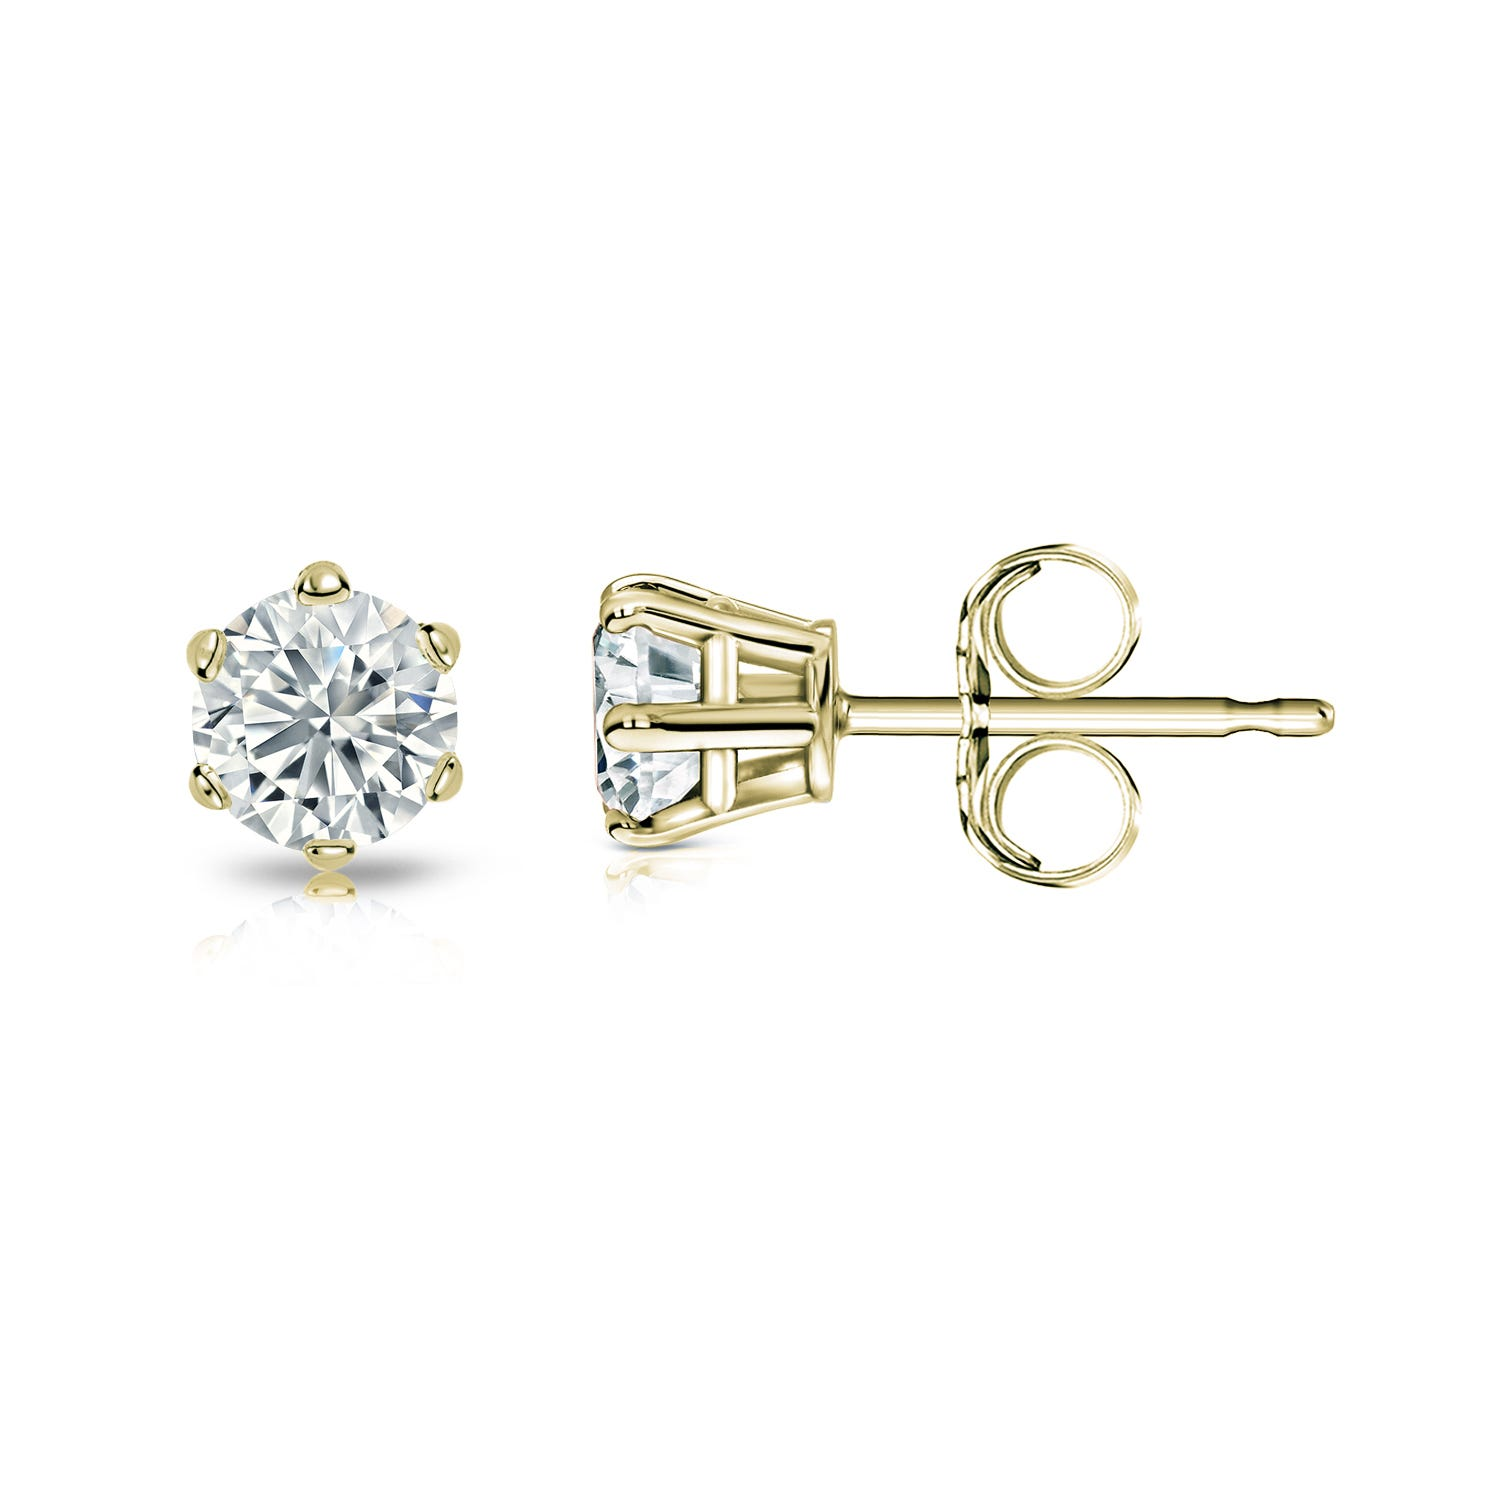 Round Diamond 1/5ctw. (IJ-I2) Solitaire Stud 6-Prong Earrings in 10K Yellow Gold